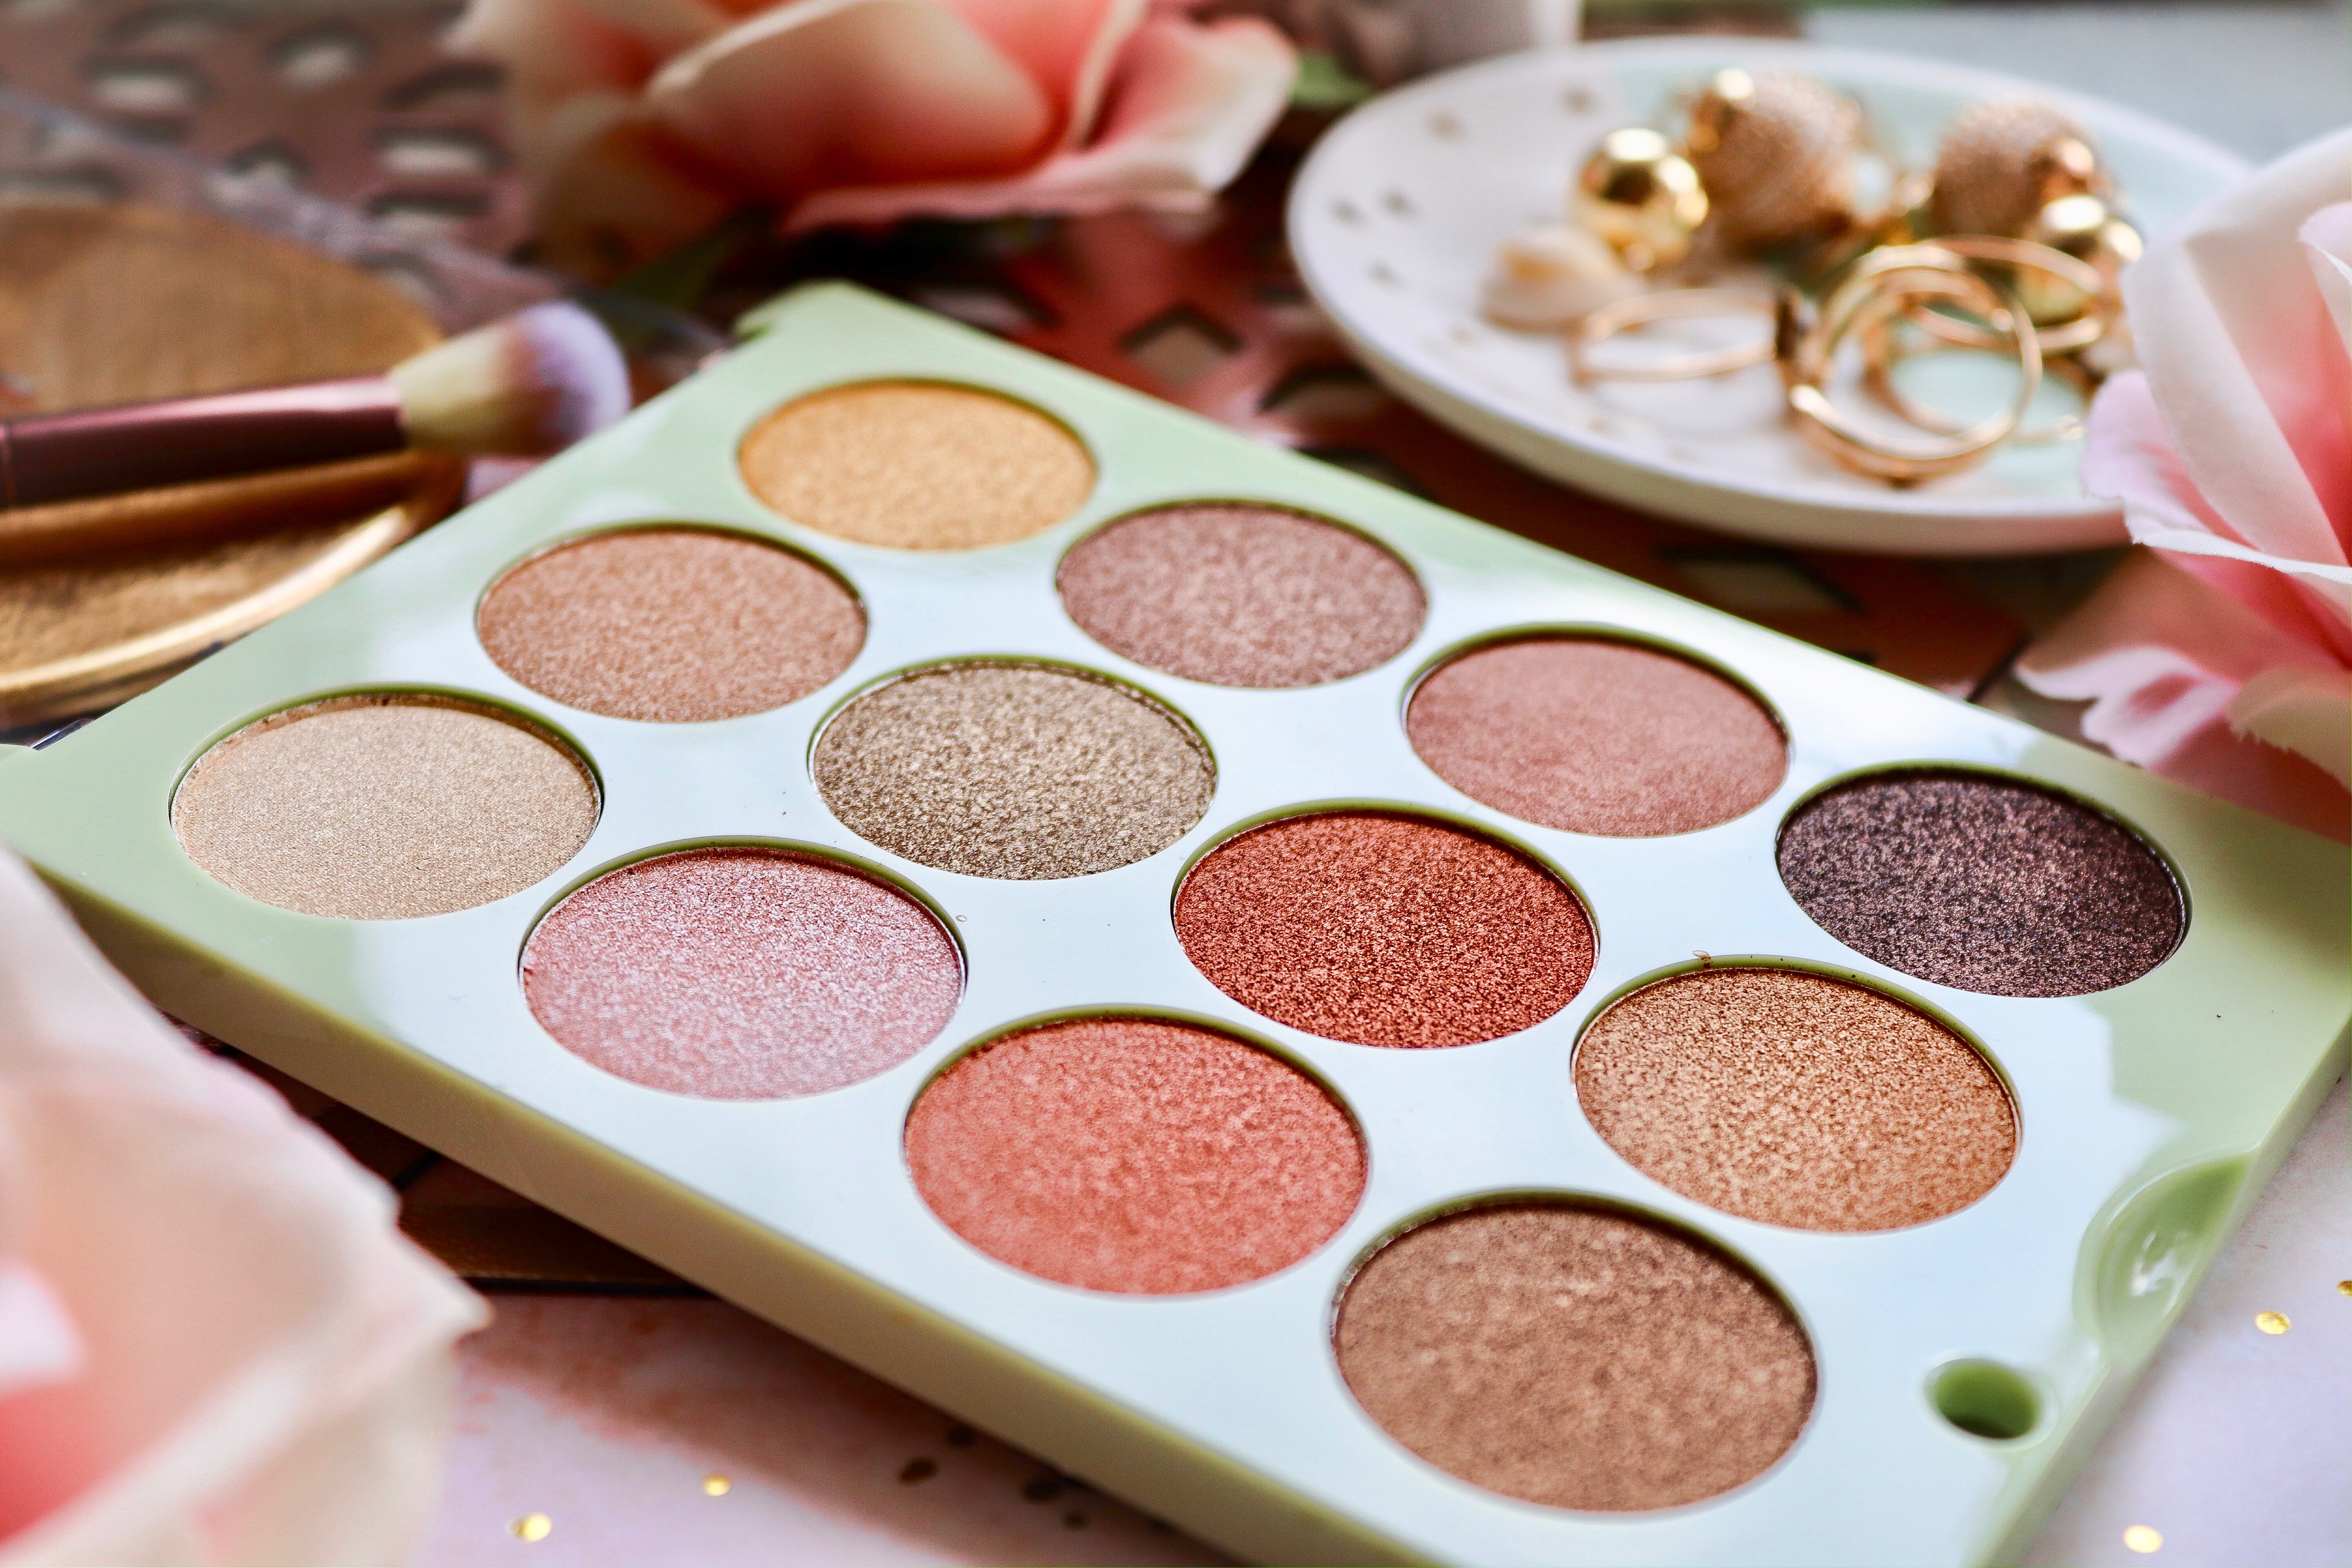 PIXI: REFLEX LIGHT PALETTE & BRUSHES REVIEW*